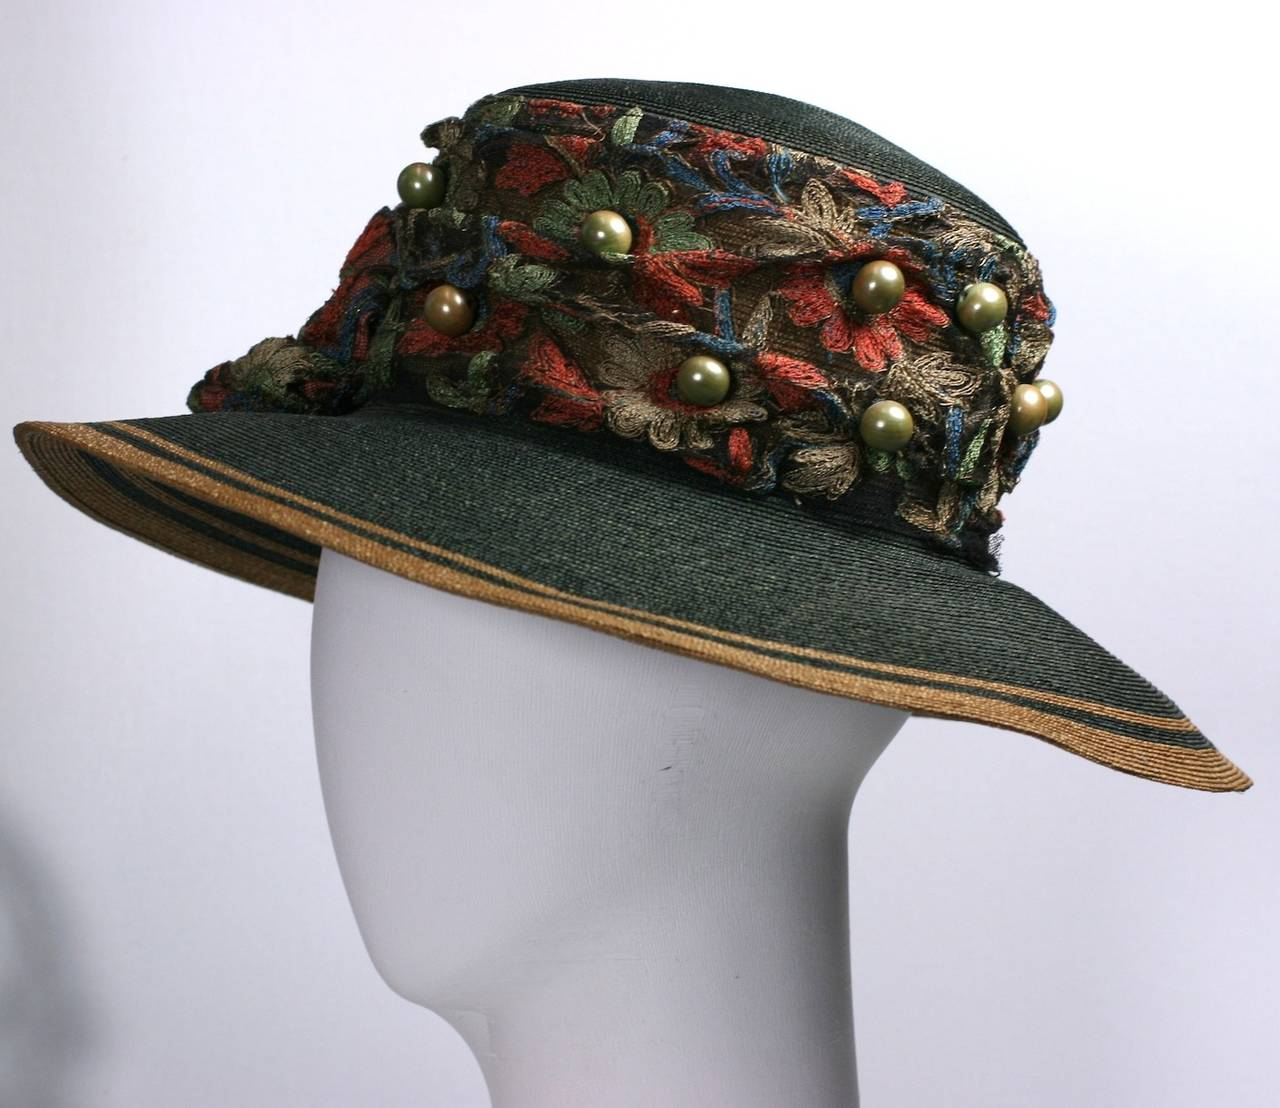 Edwardian straw hat with floral lace and large green faux pearls from the early 20th Century. 2 toned straw is decorated with a wide vibrant band of floral lace and 3 large lace rosettes. Large celadon faux pearls are strewn throughout.